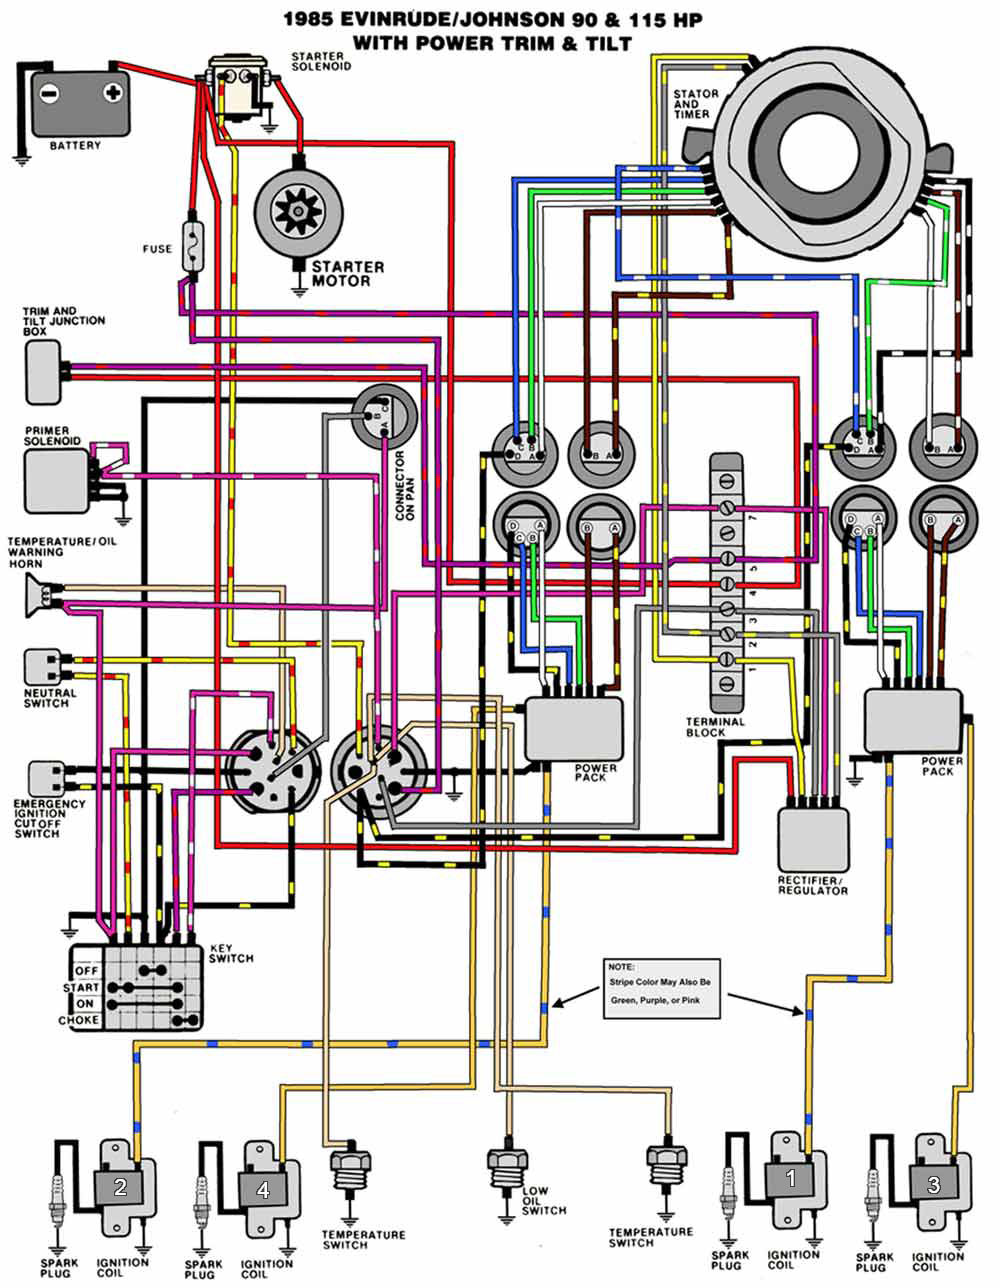 hight resolution of mercury 50 hp wiring diagram wiring libraryjohnson outboard motor wiring diagram motorwallpapers org rh motorwallpapers org